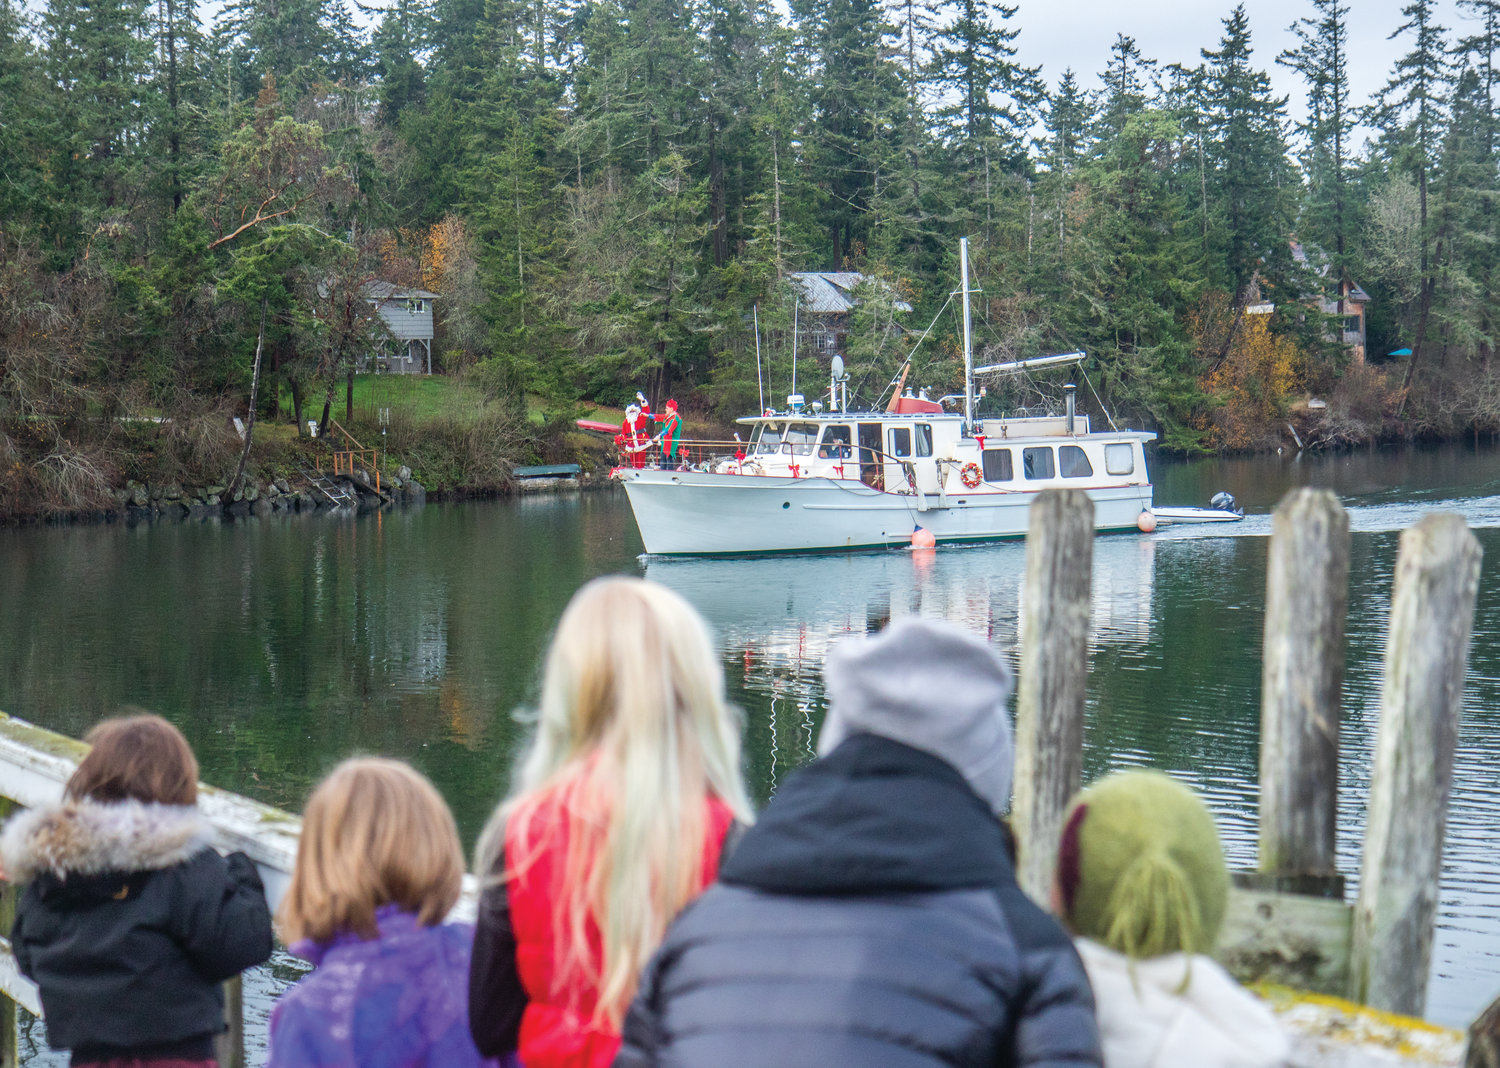 Santa Claus arrives at Marrowstone Island every winter by boat. For the past 20 years, he's hitched a ride on the 1963 boat, Pelican Point, captained by Larry Fay and Martha Ashman.